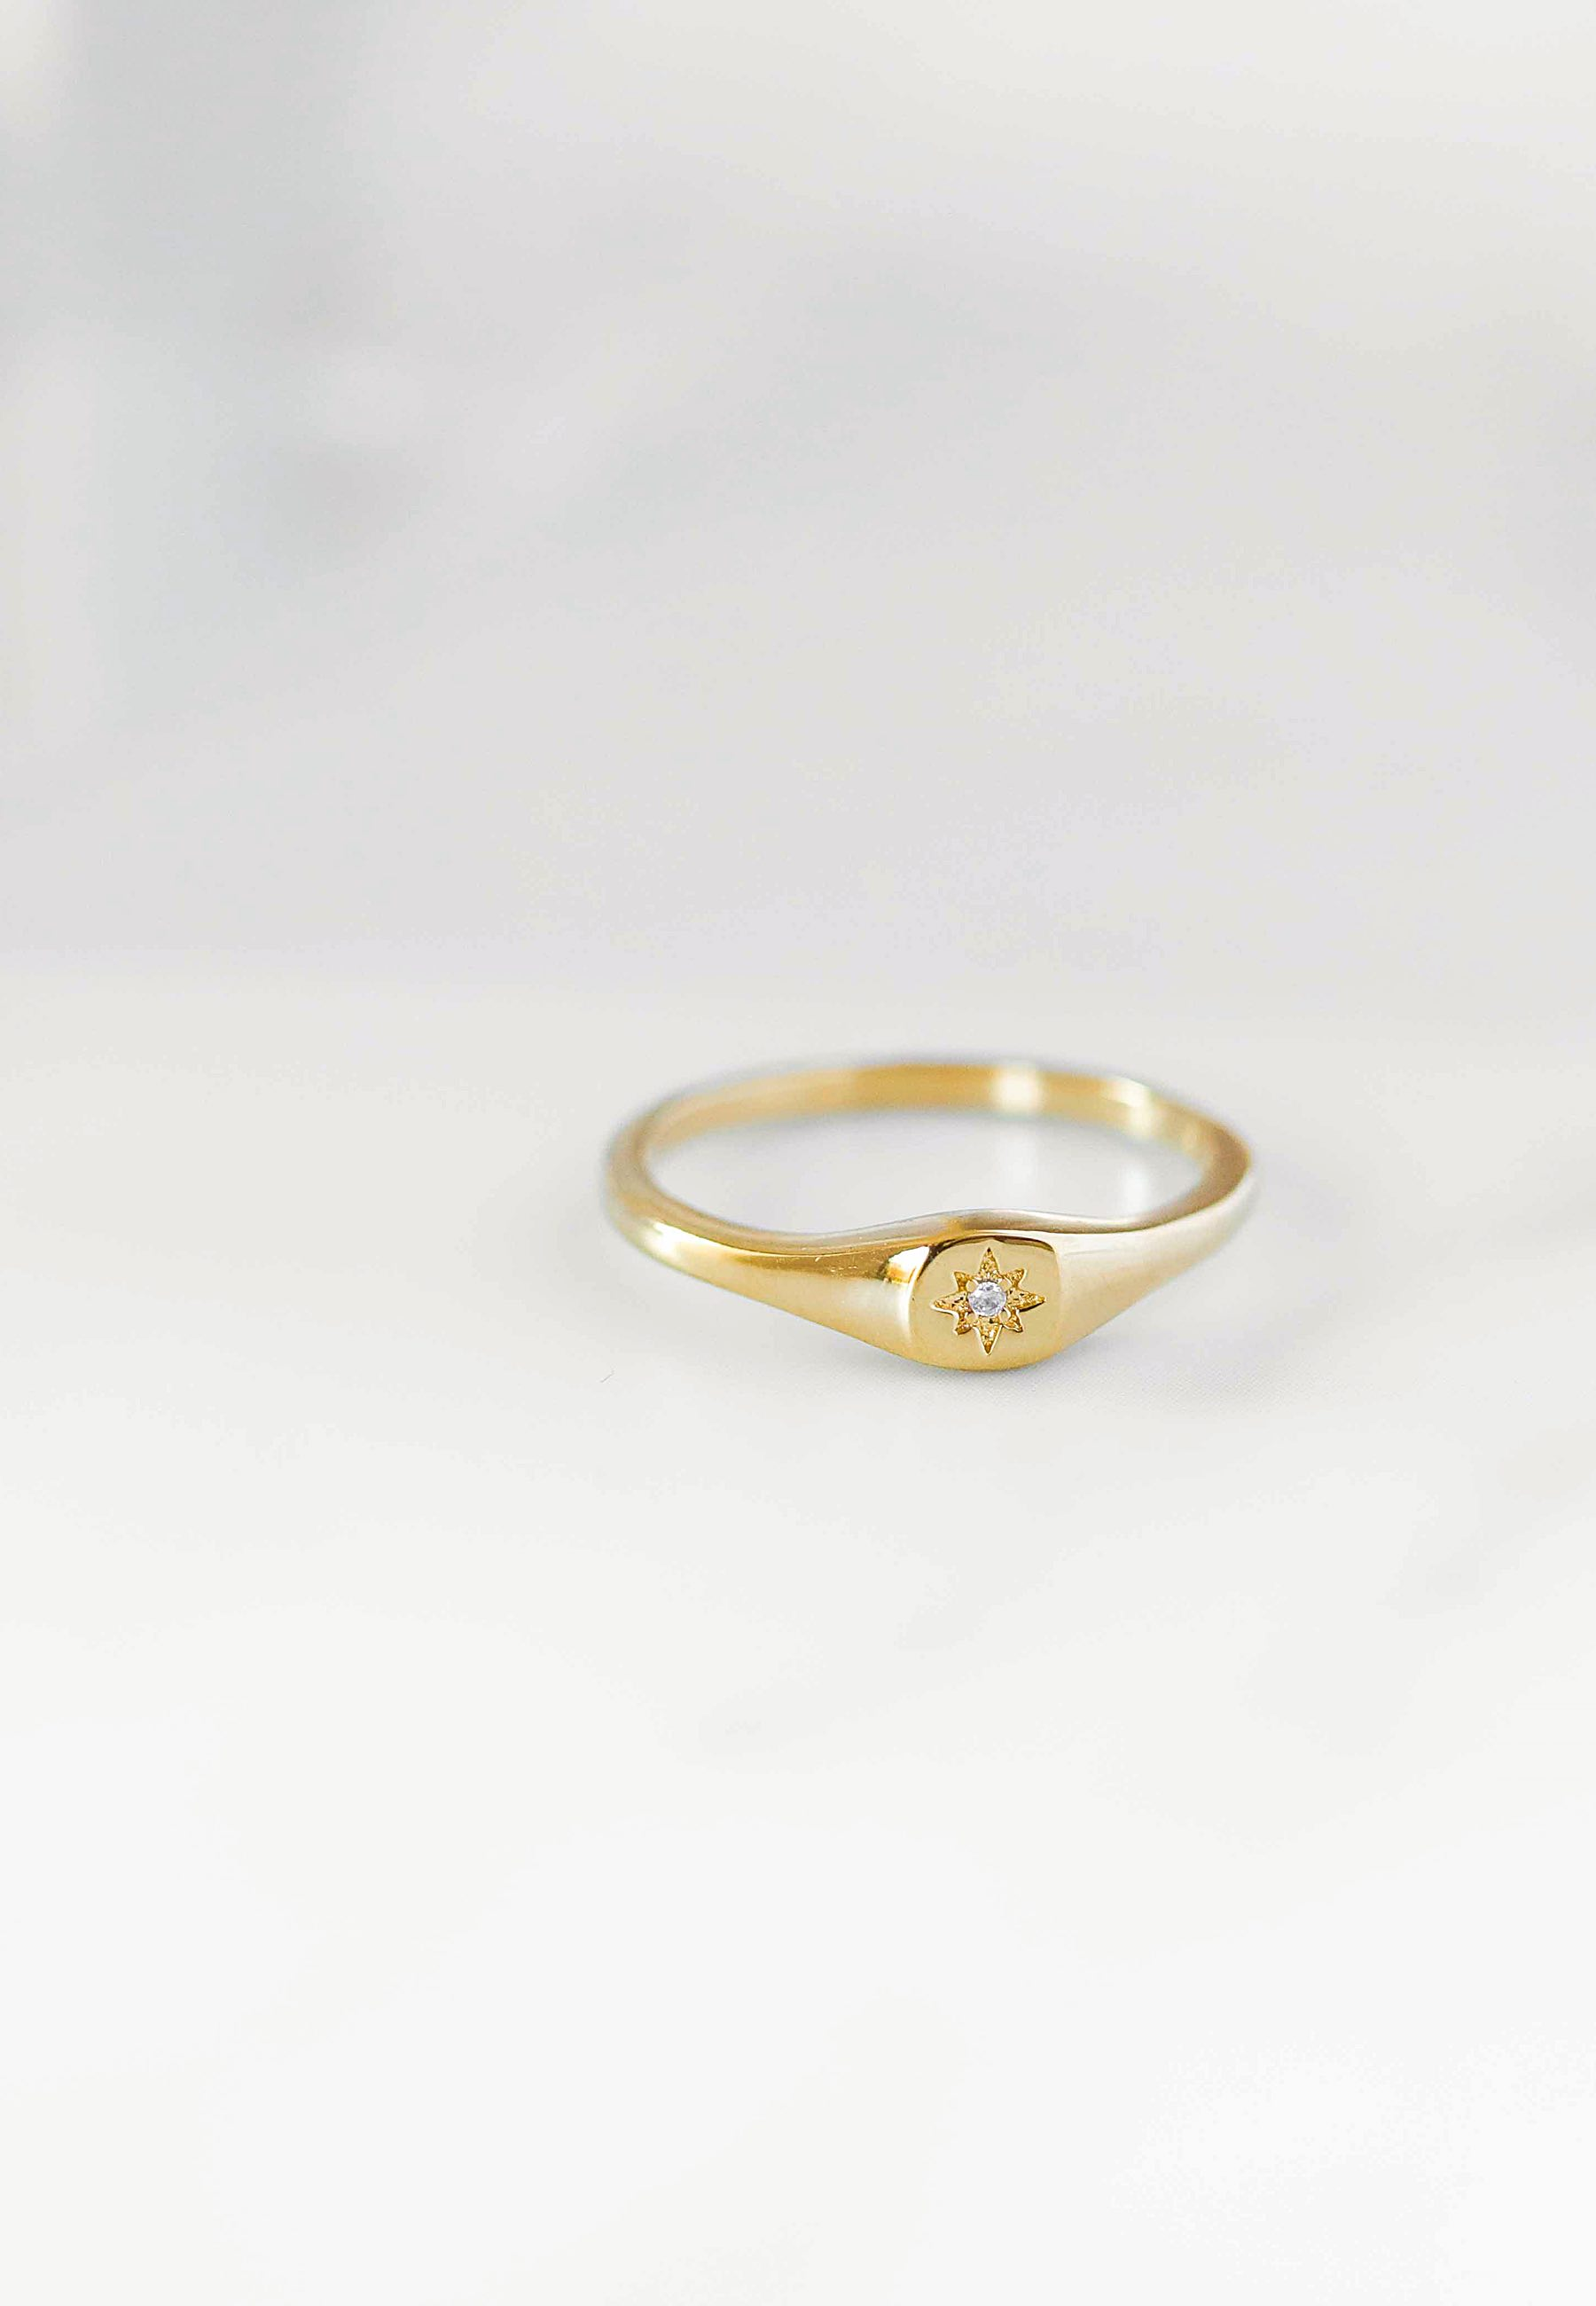 STAMP gold ring